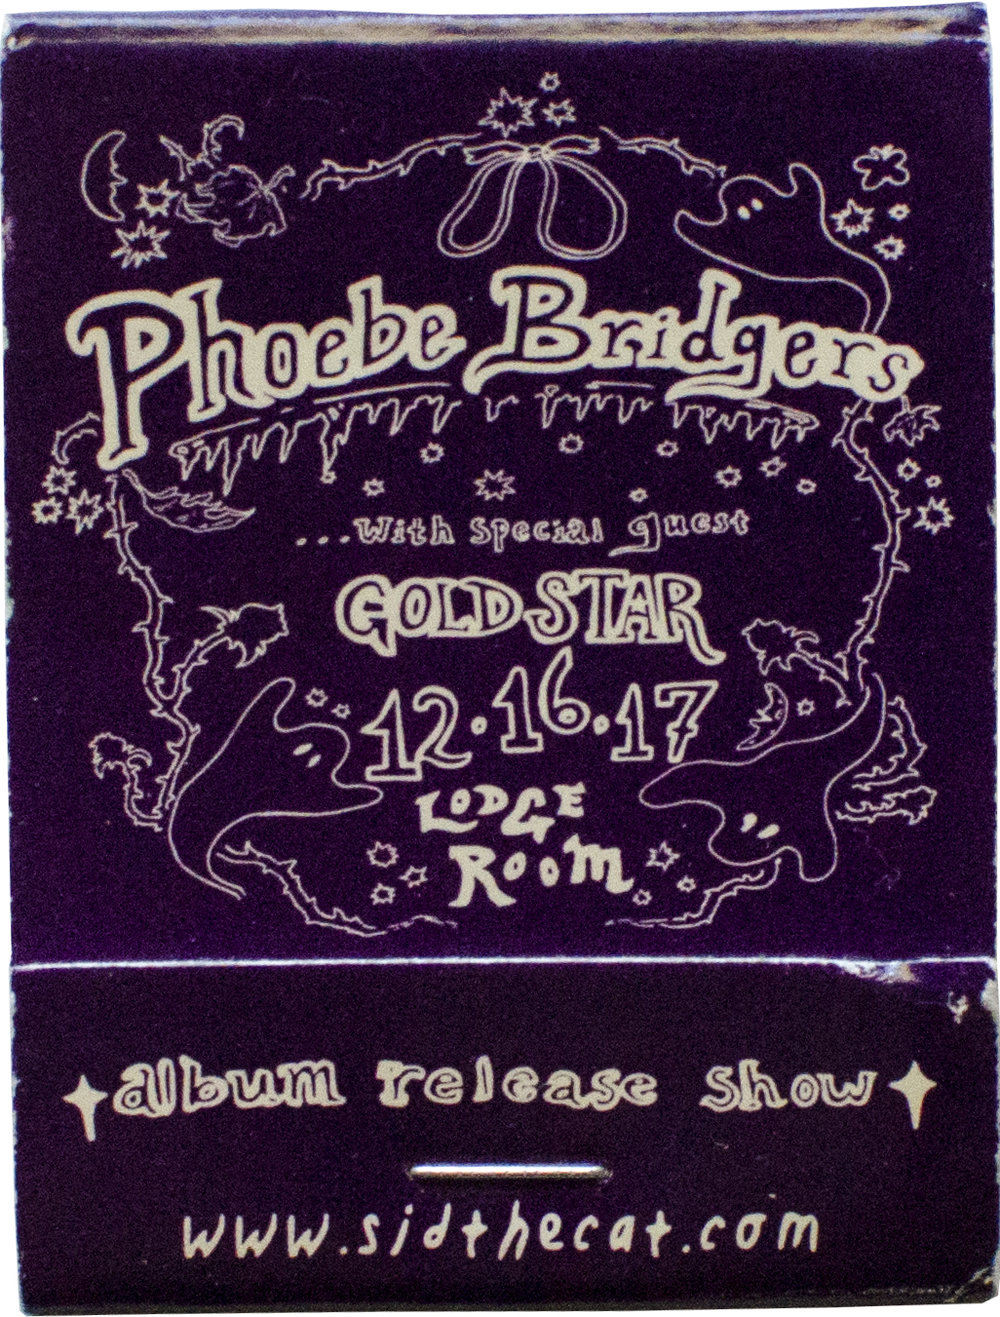 2017-12-16 Phoebe Bridgers.jpg